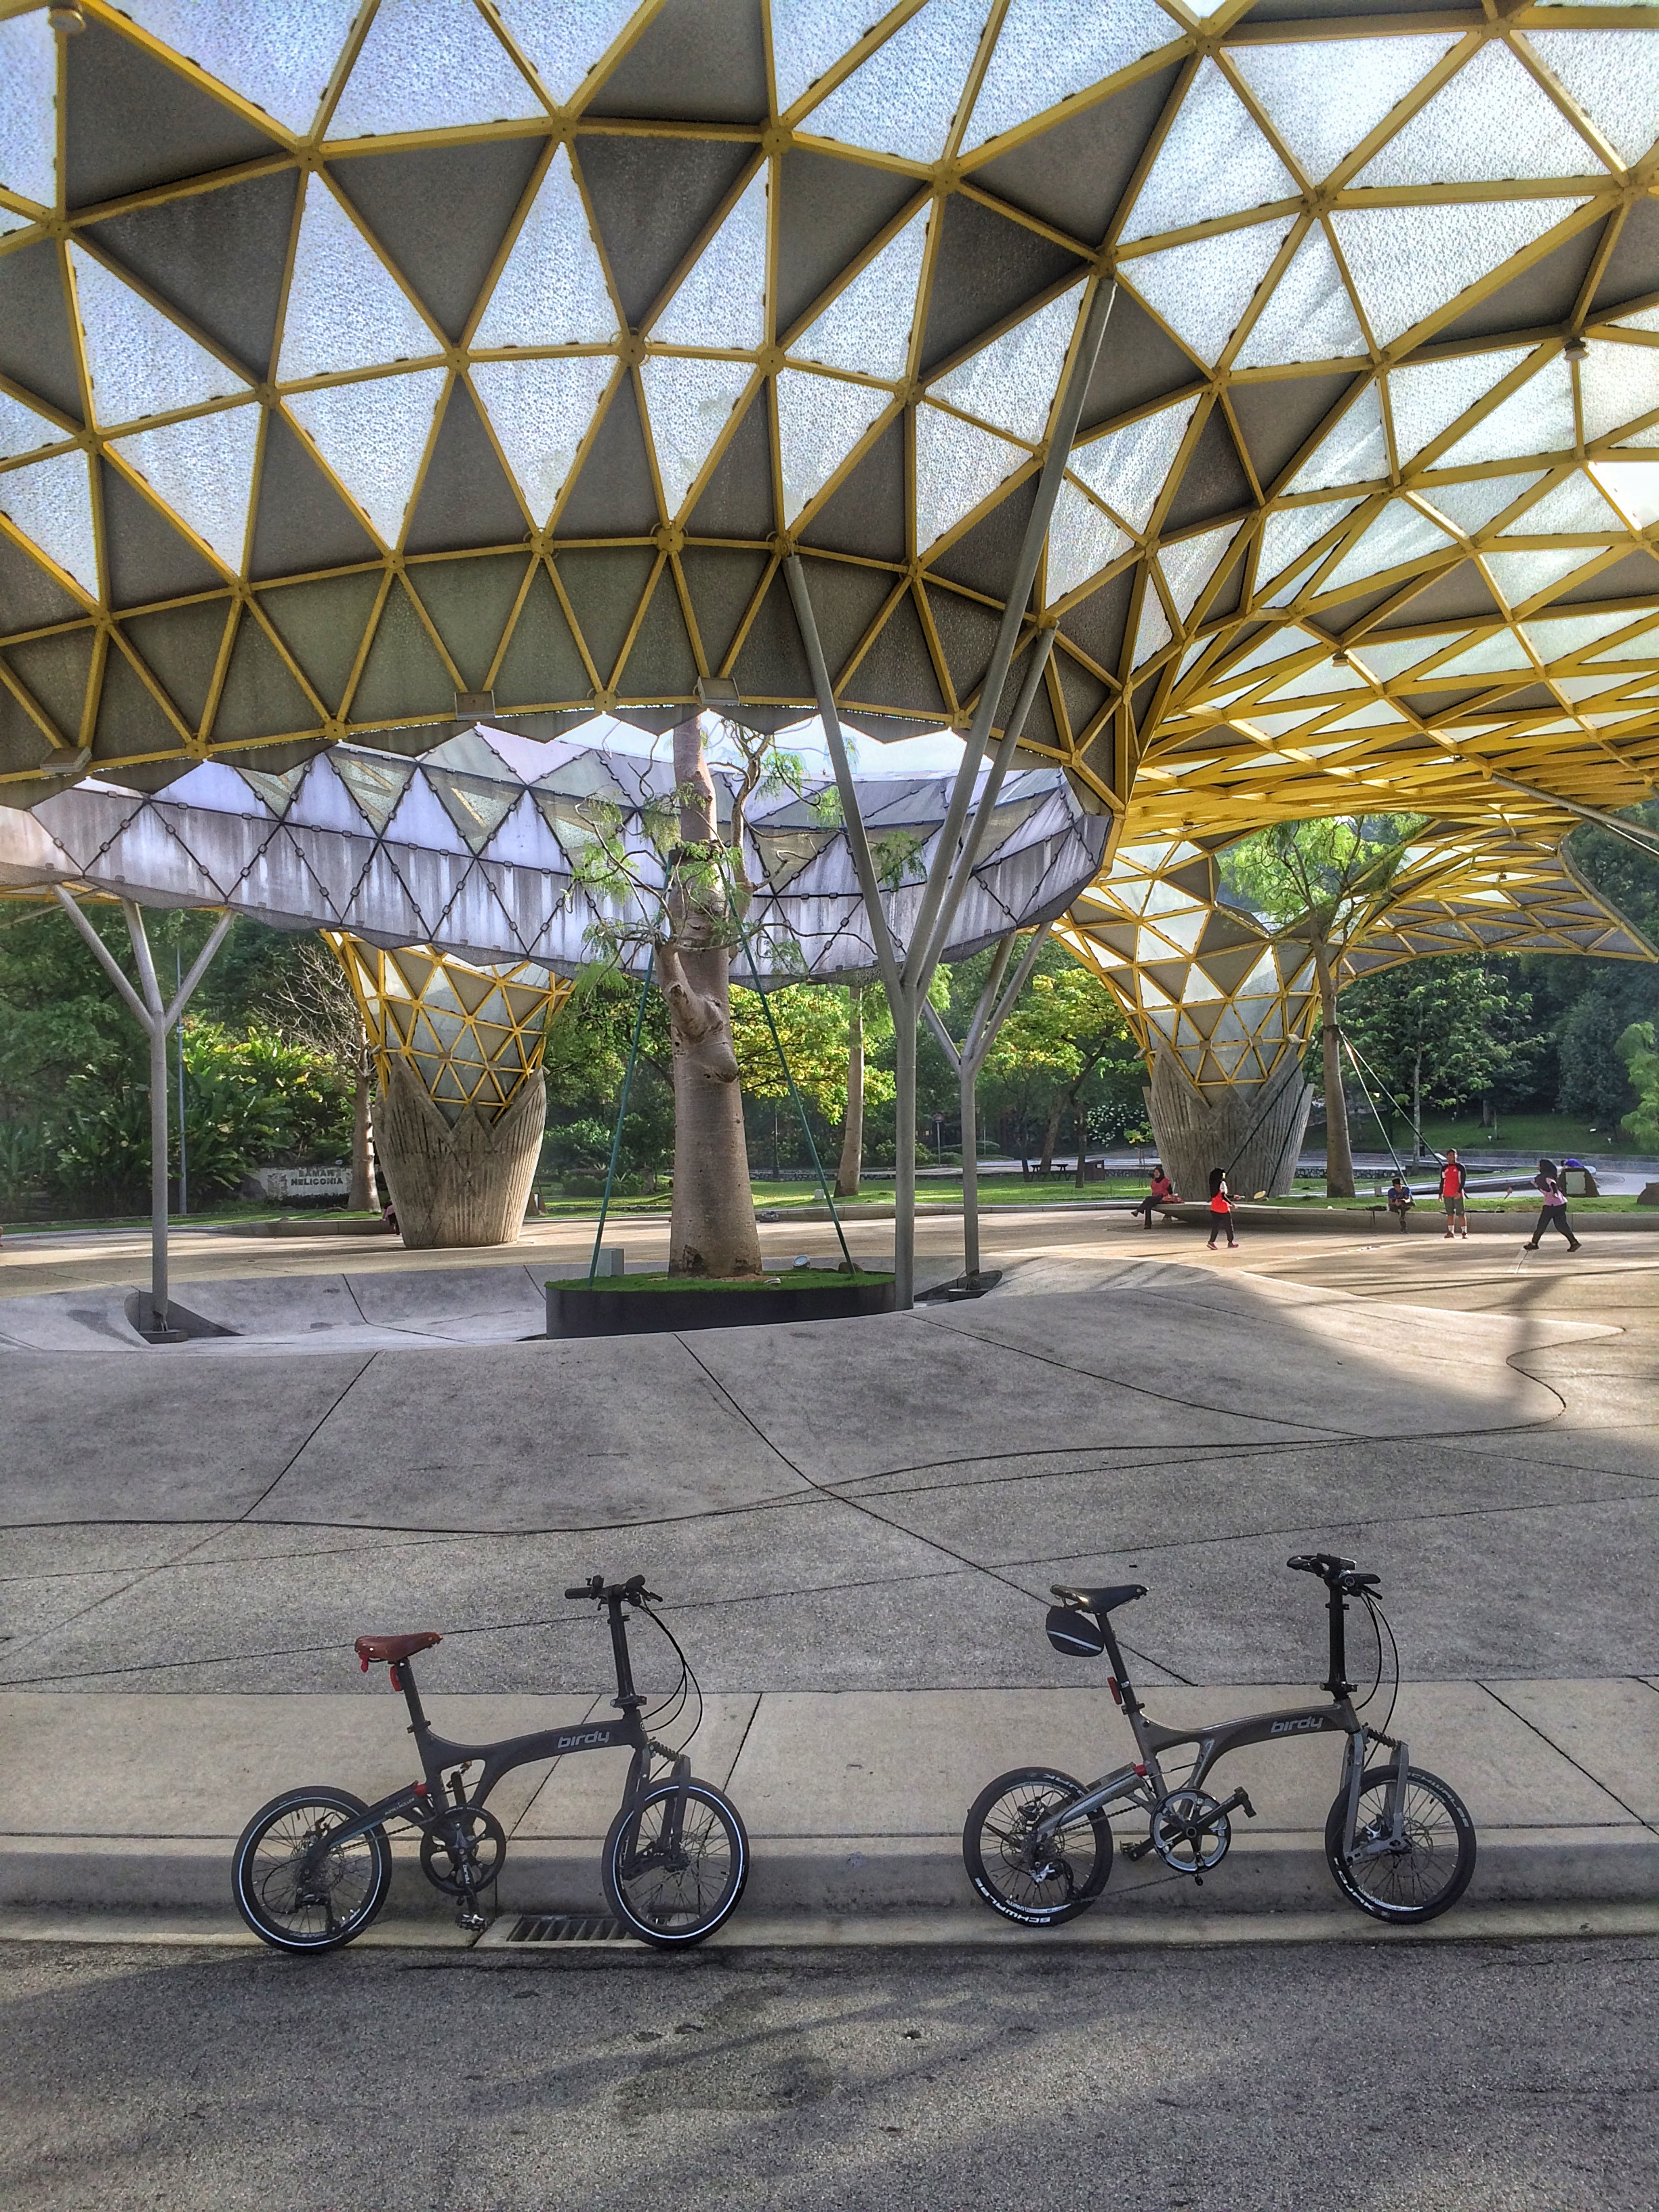 The skate park at the Perdana Botanical Gardens.